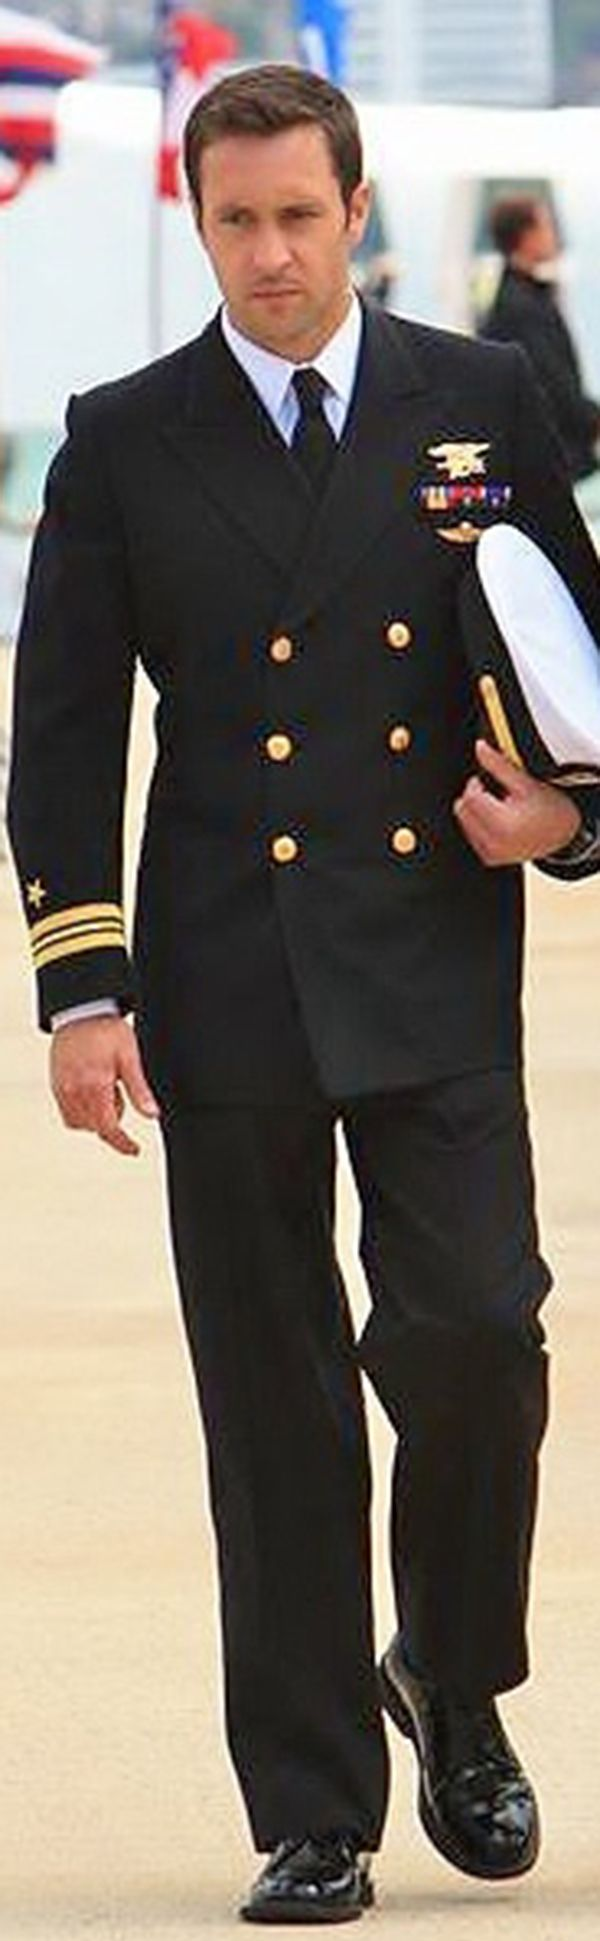 Alex O'Loughlin - I'm a sucker for a man in uniform!